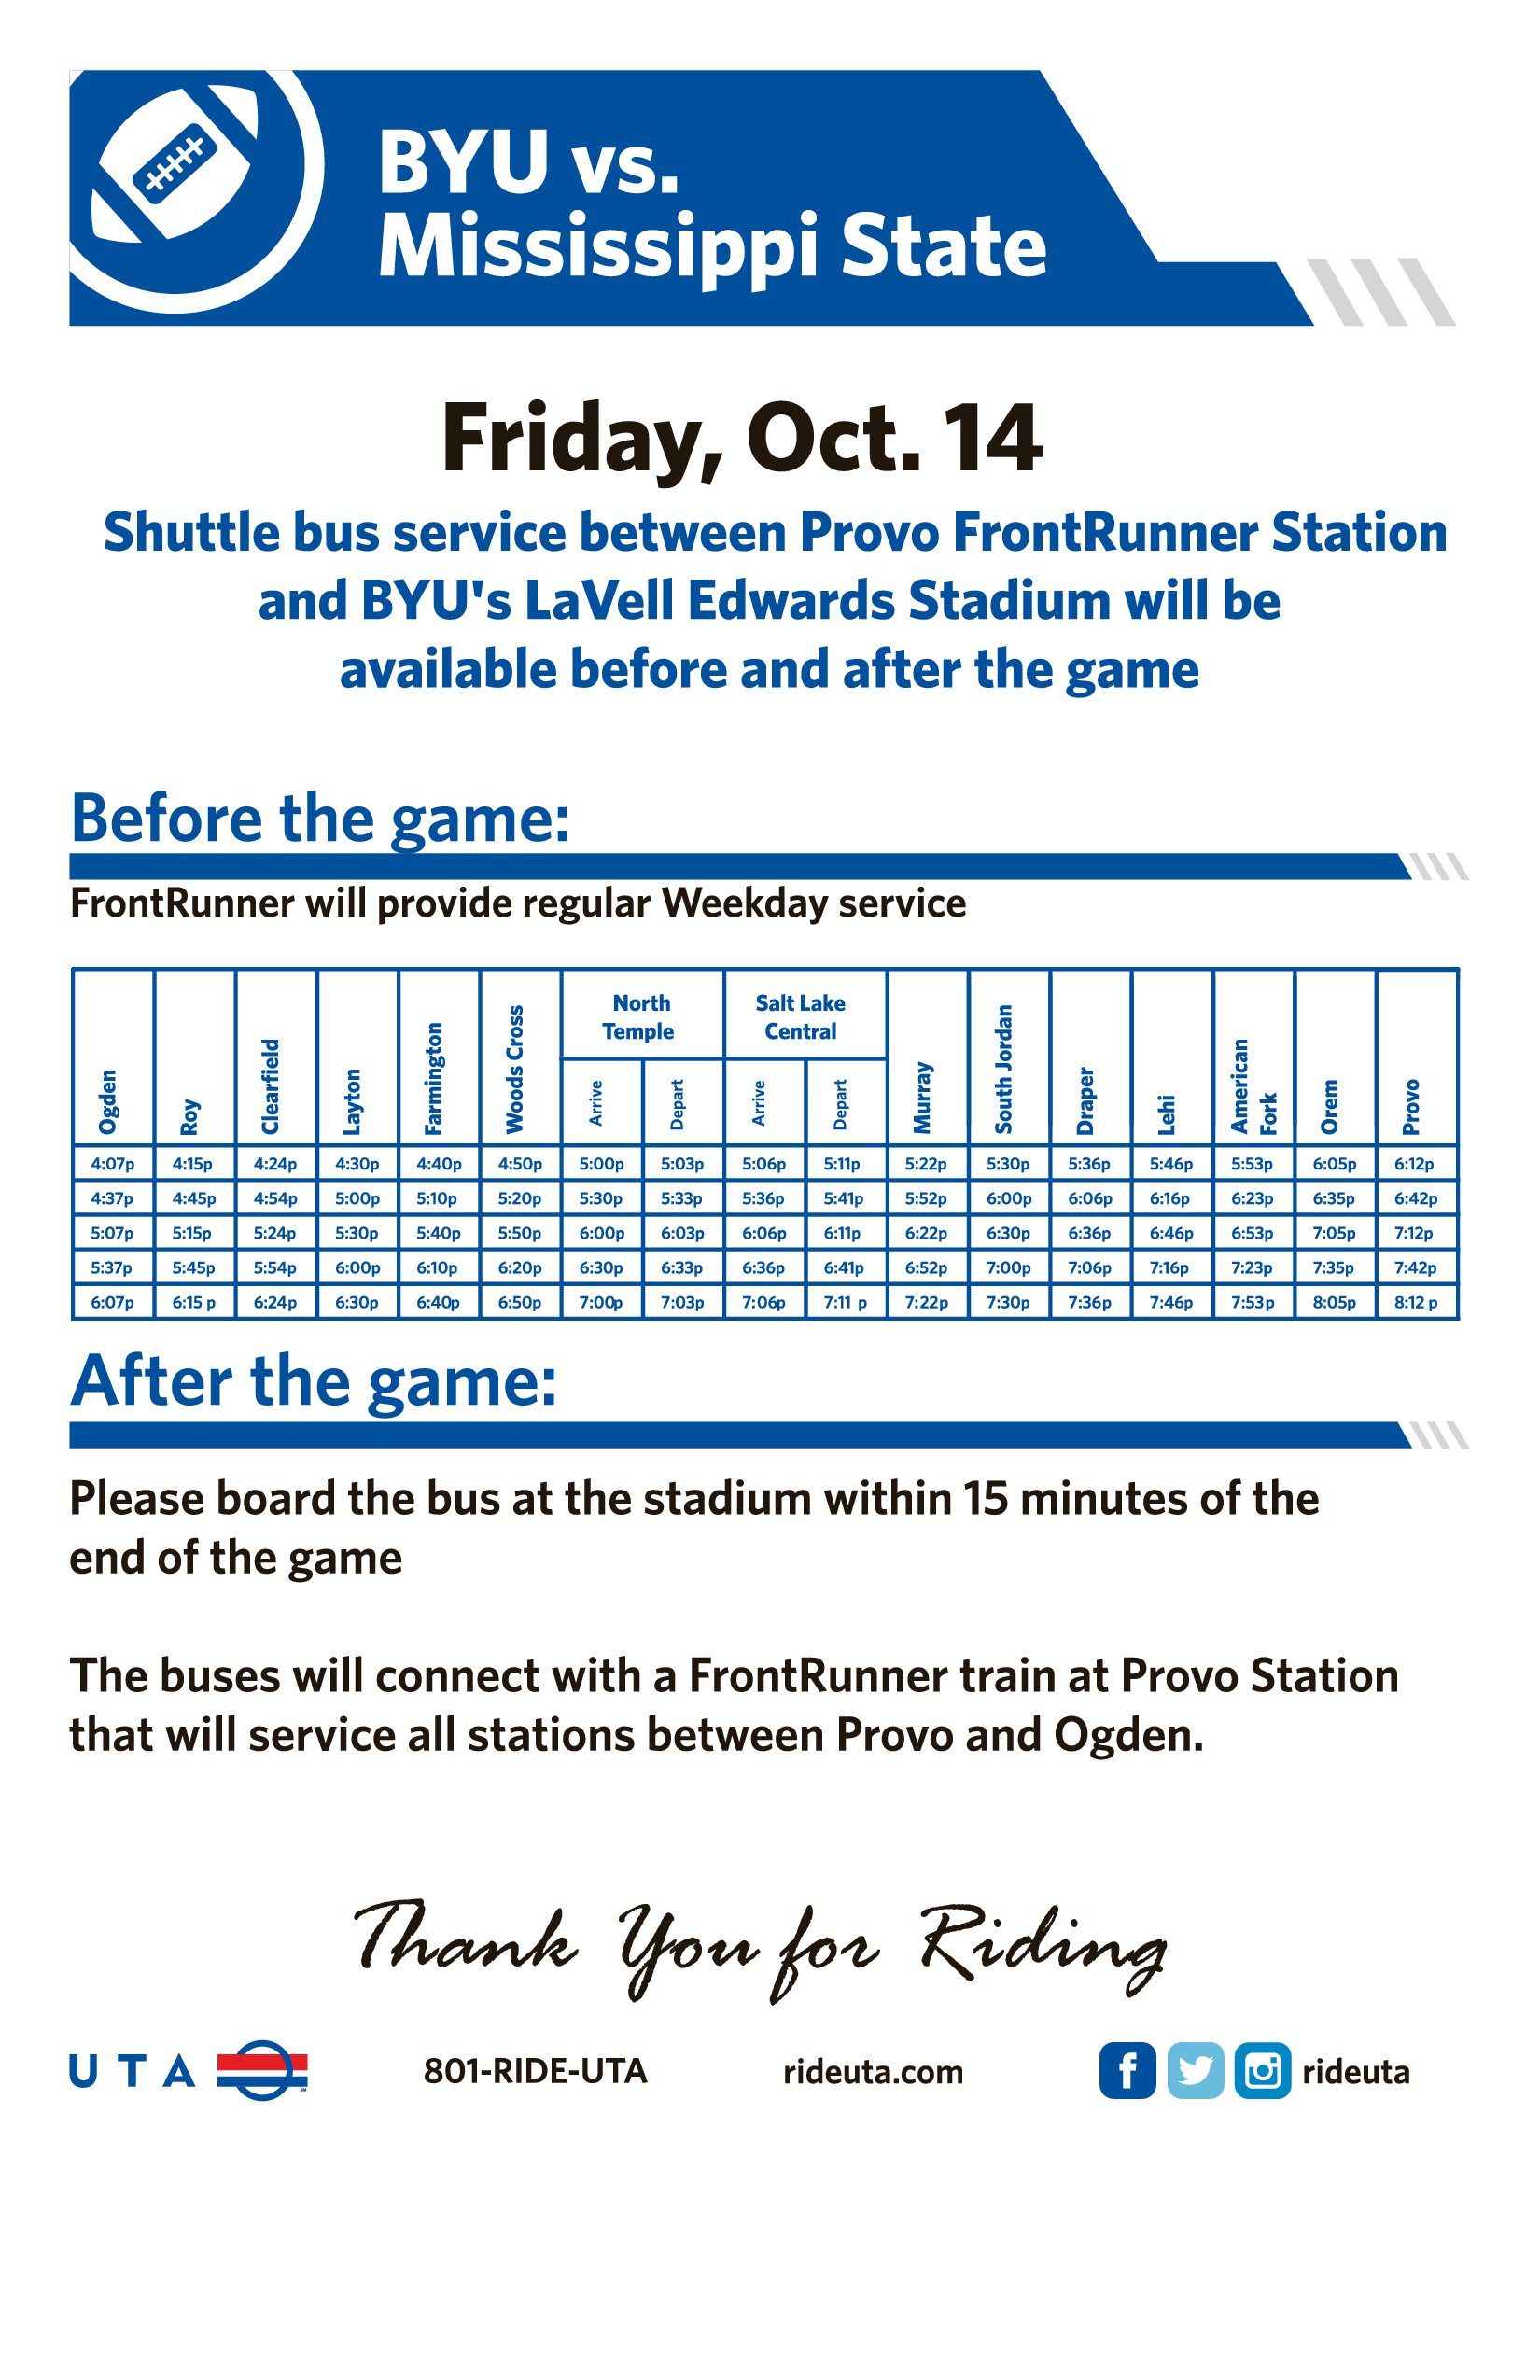 enjoy extra service to the 14 byu game passes can be purchased online until 11 59 p m on monday oct 10 or purchased at a uta customer service location until the close of business on game day